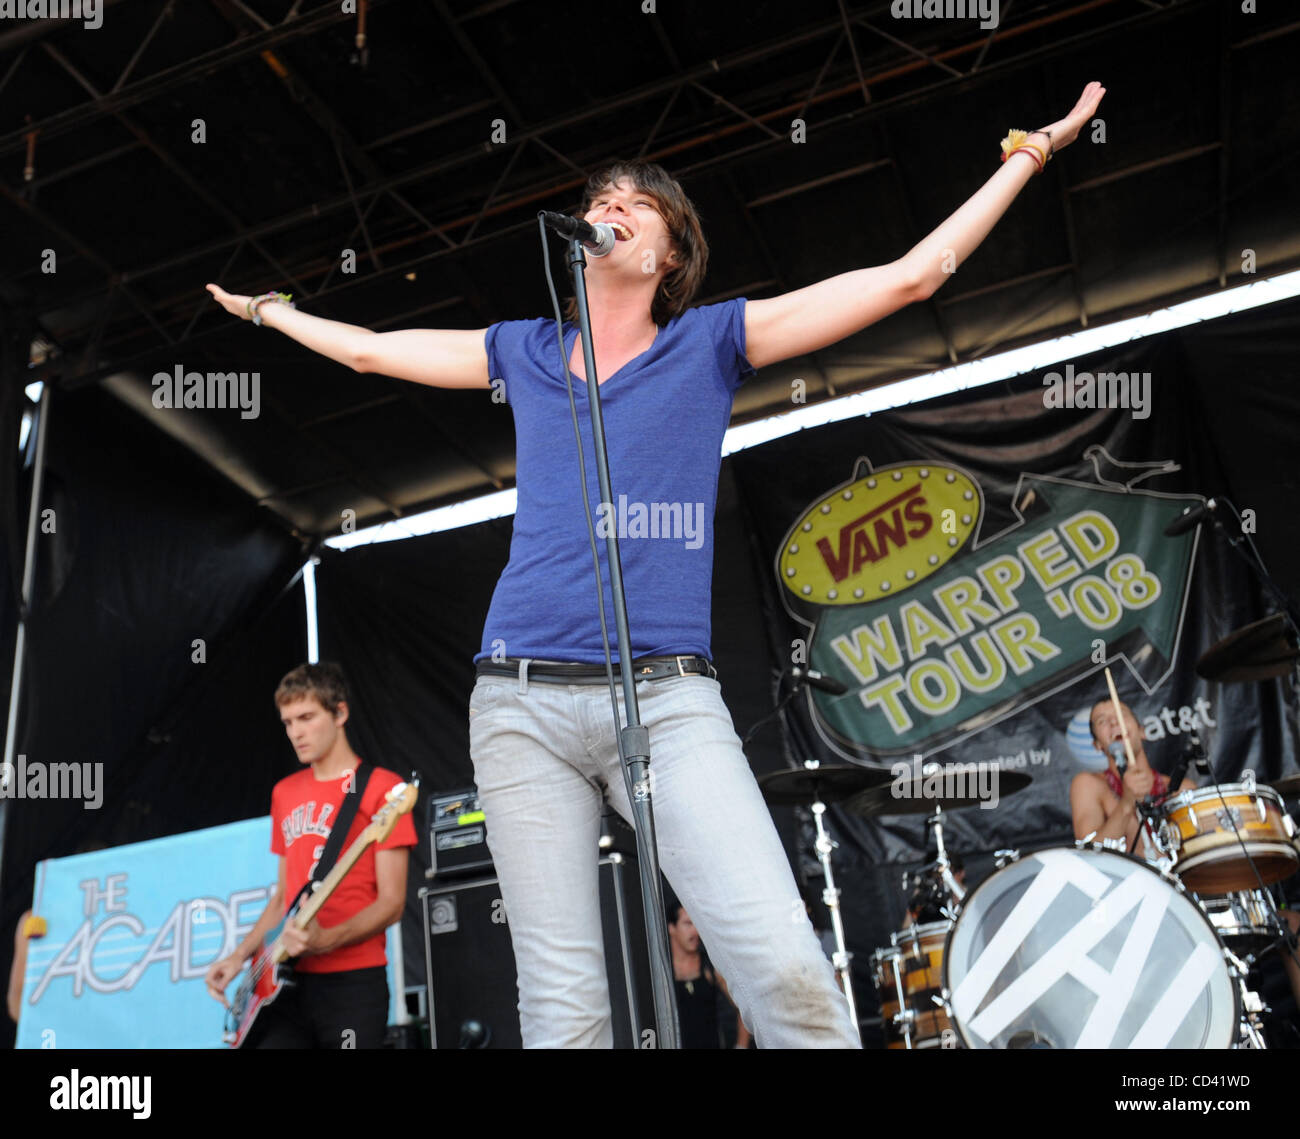 Jul 14, 2008 - Charlotte, North Carolina; USA - Musicians THE ACADEMY IS performs live as part of the 2008 Vans - Stock Image